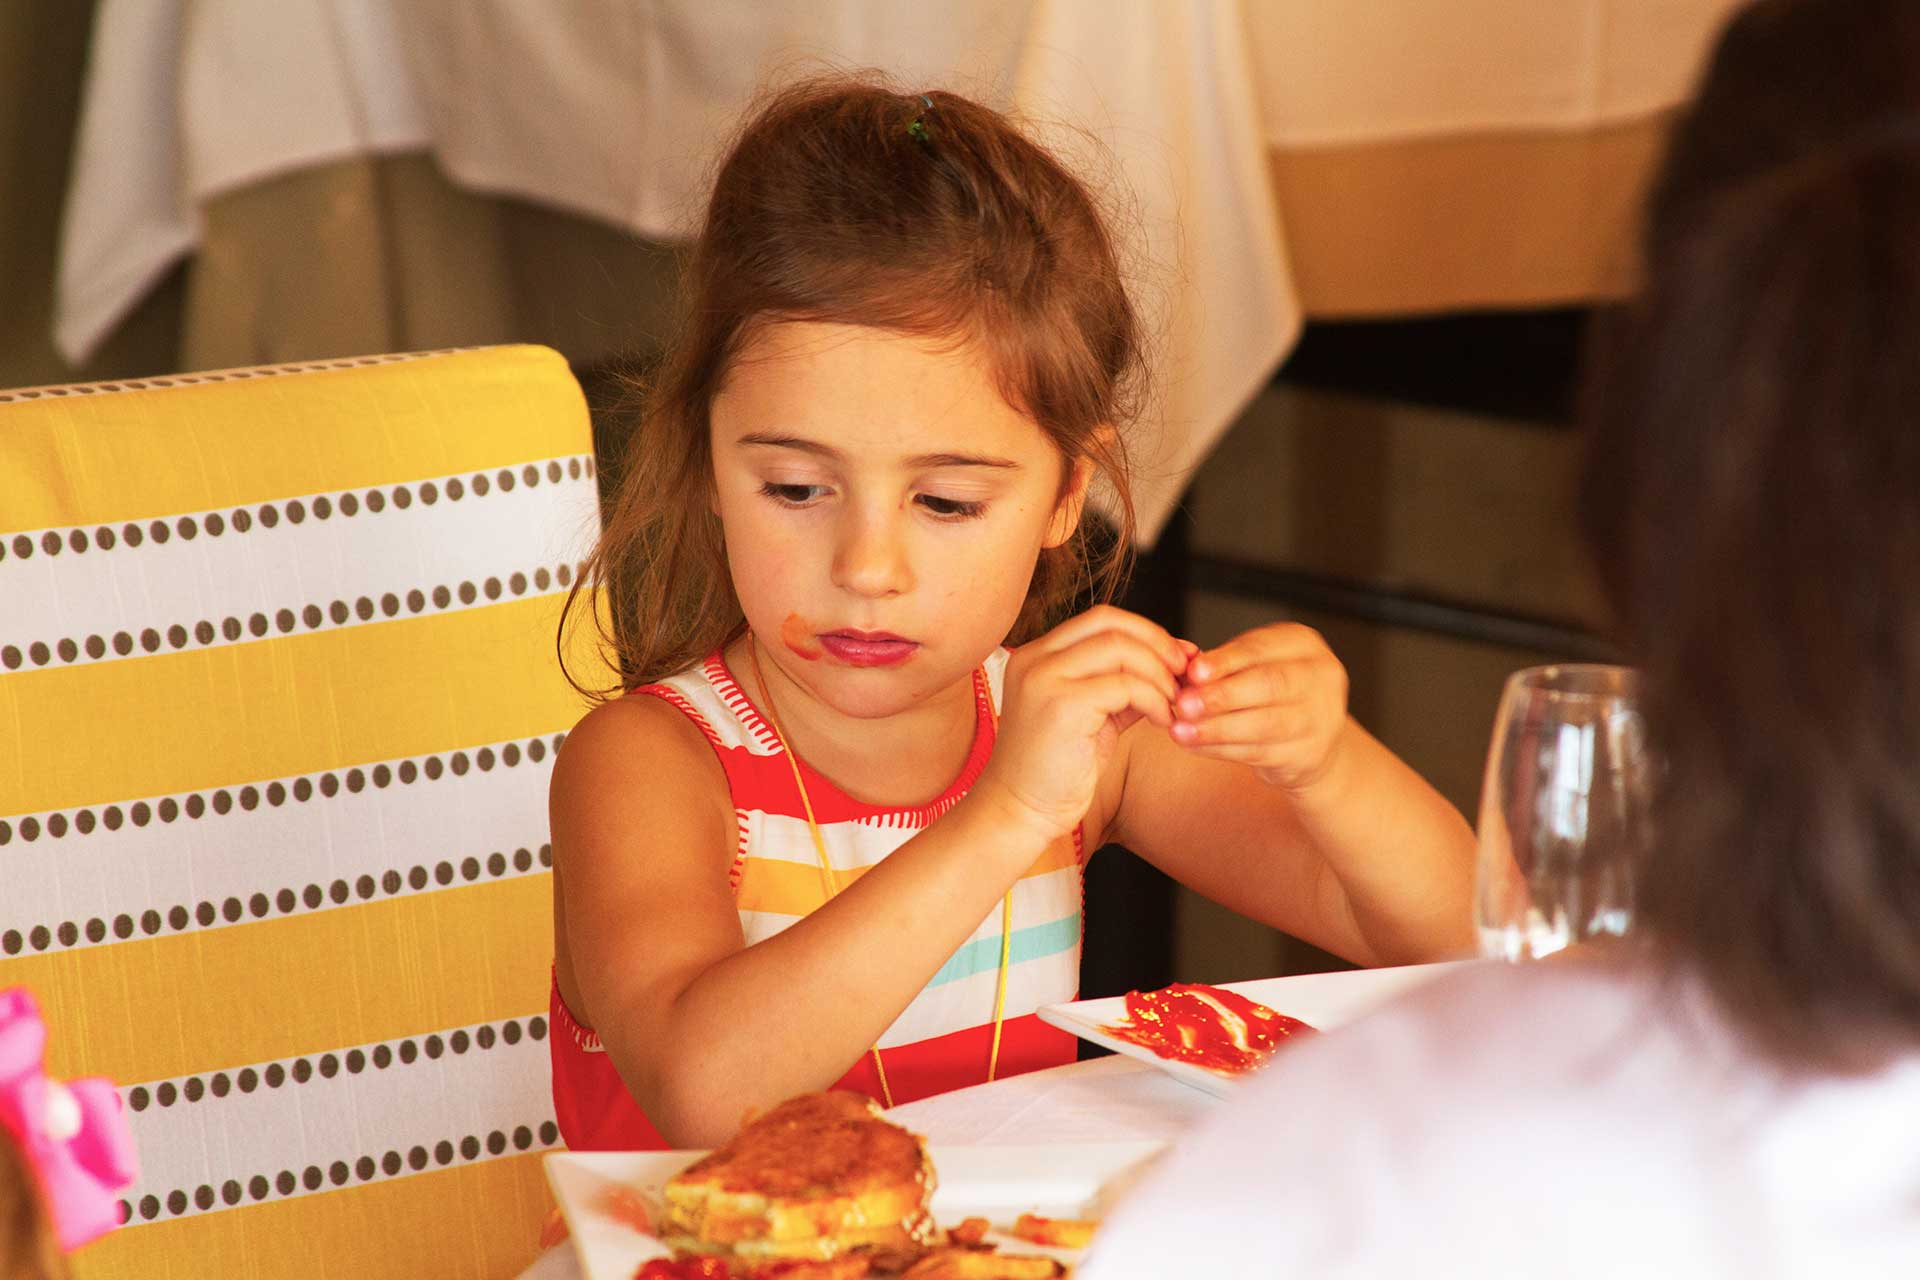 kids birthday party Toronto - outdoor rooftop terrace - sit-down lunch